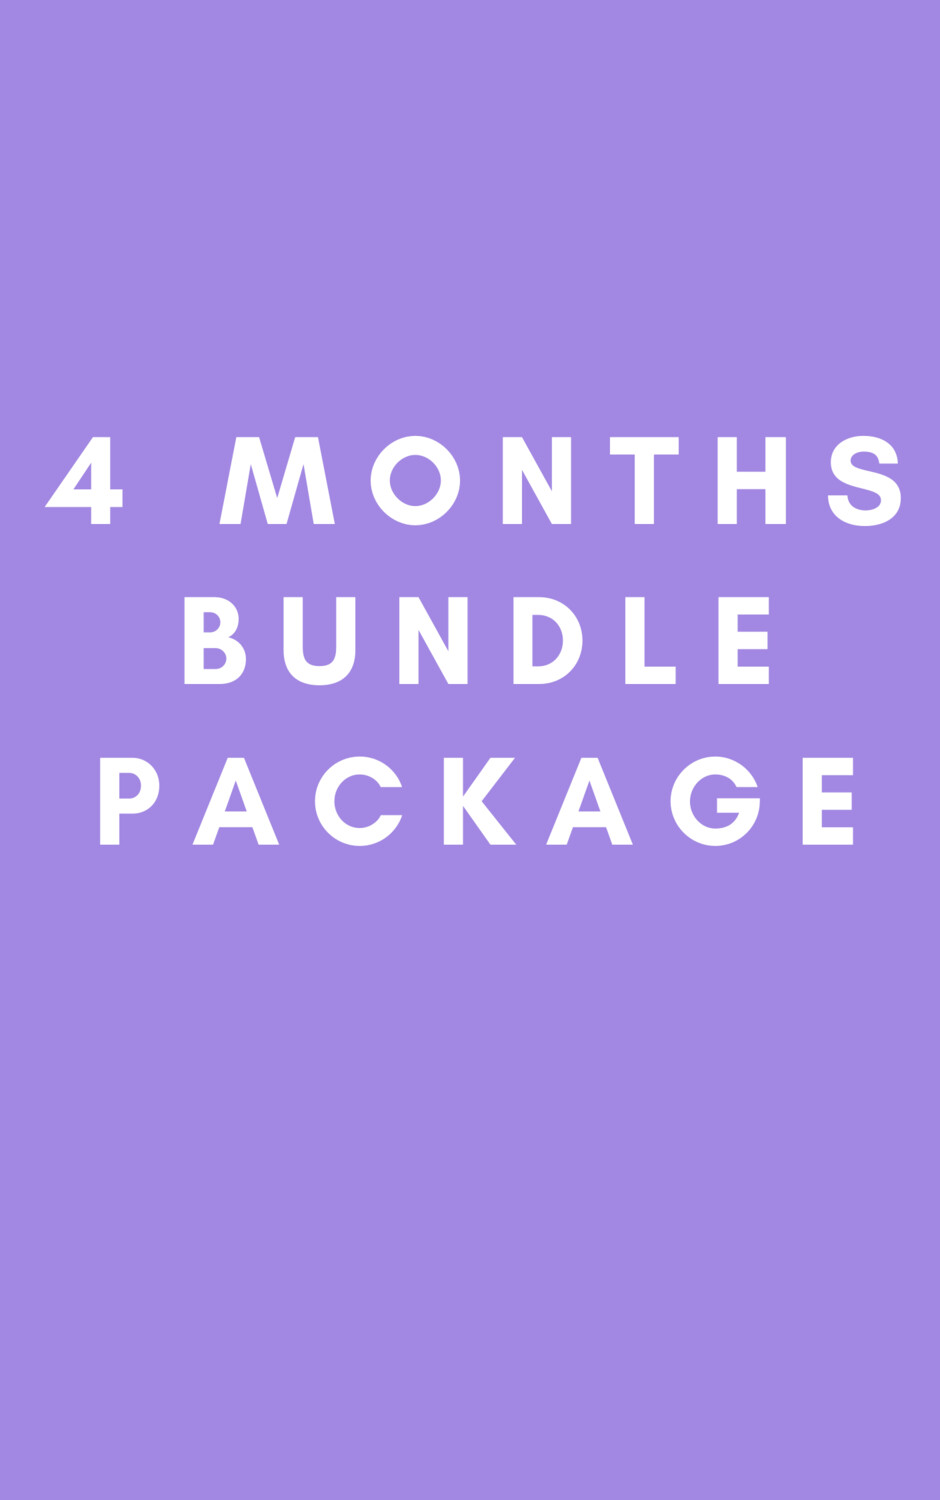 4 Months Bundle Package